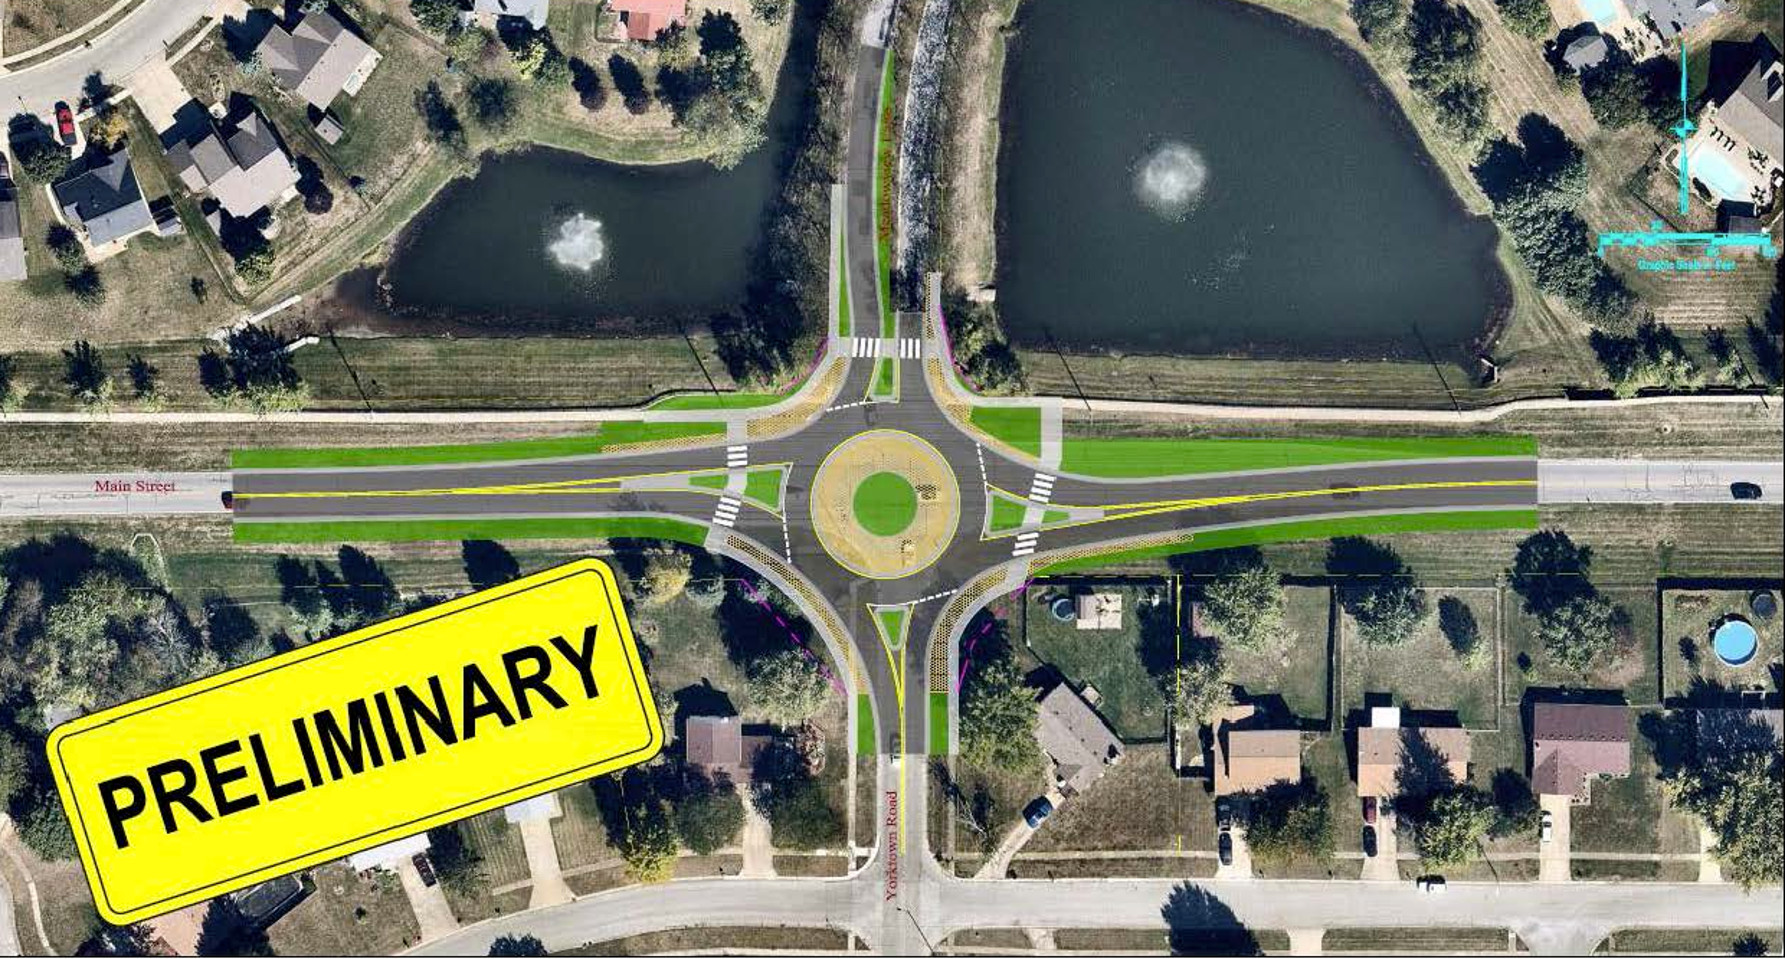 Main/Meadowview Roundabout